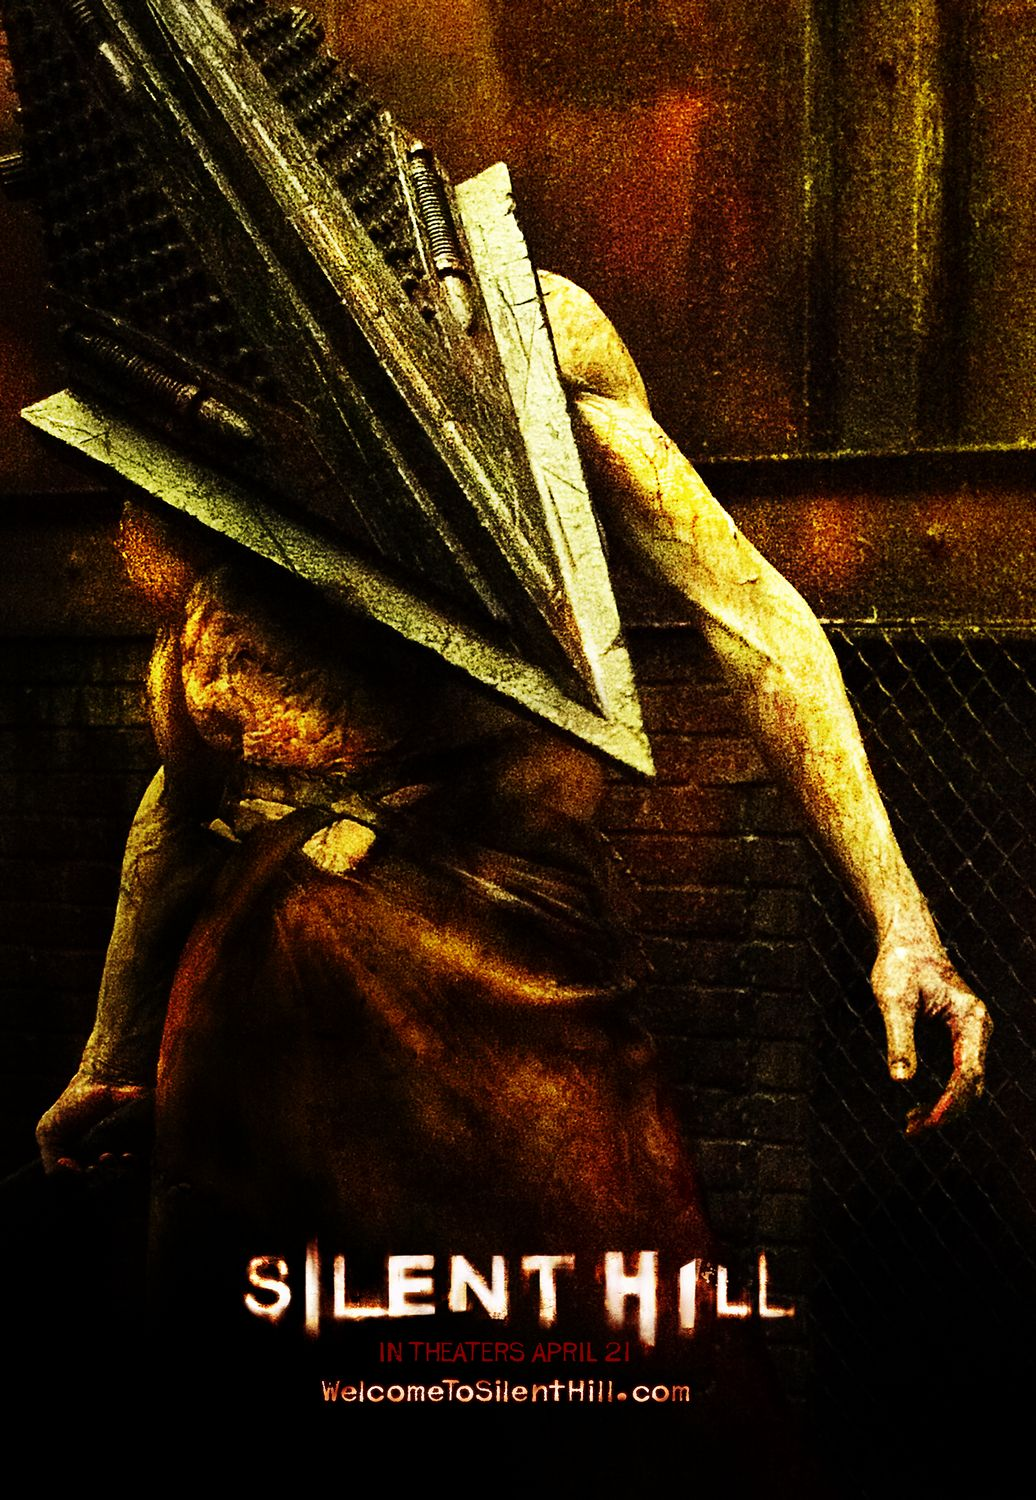 Silent Hill Movie Posters - Silent Hill Memories